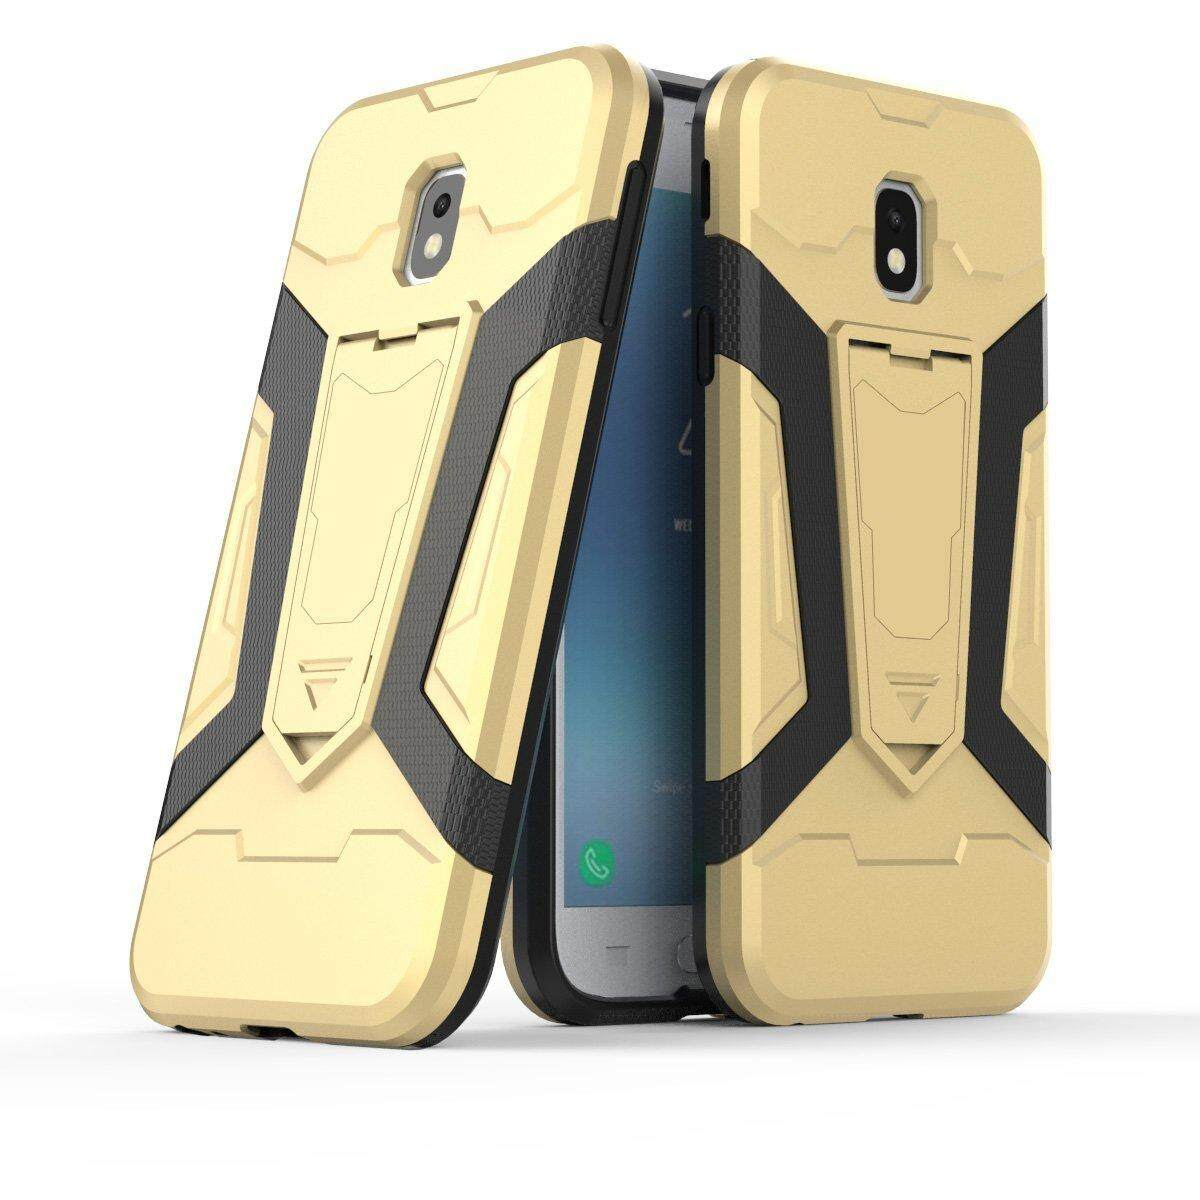 Hybrid Rugged Armor Hard Back Cover Case with Kickstand for SamsungGalaxy J2 2015 J200 - intl